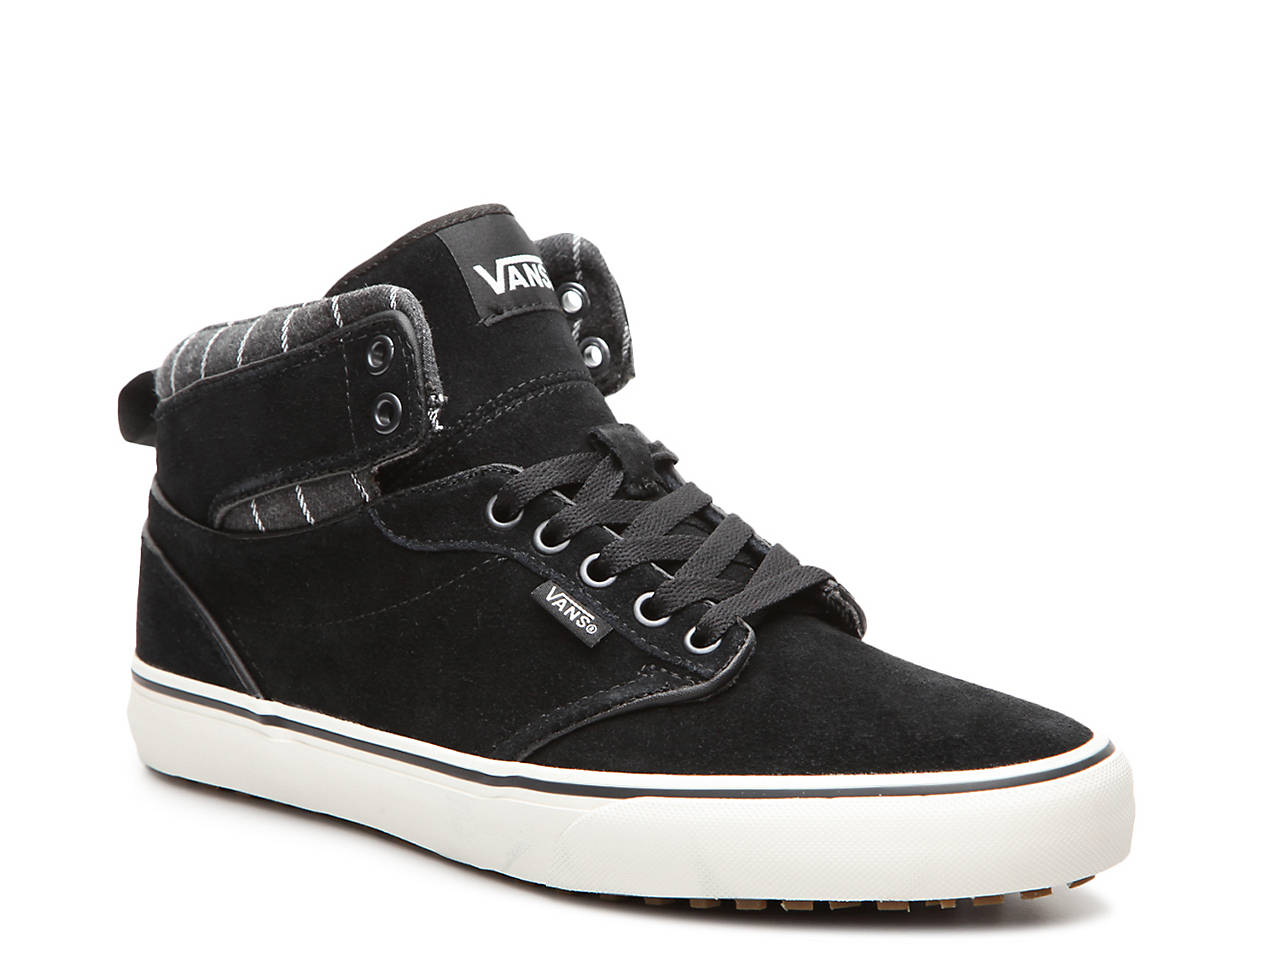 fa1f0e288e Vans Atwood Hi MTE High-Top Sneaker - Men s Men s Shoes